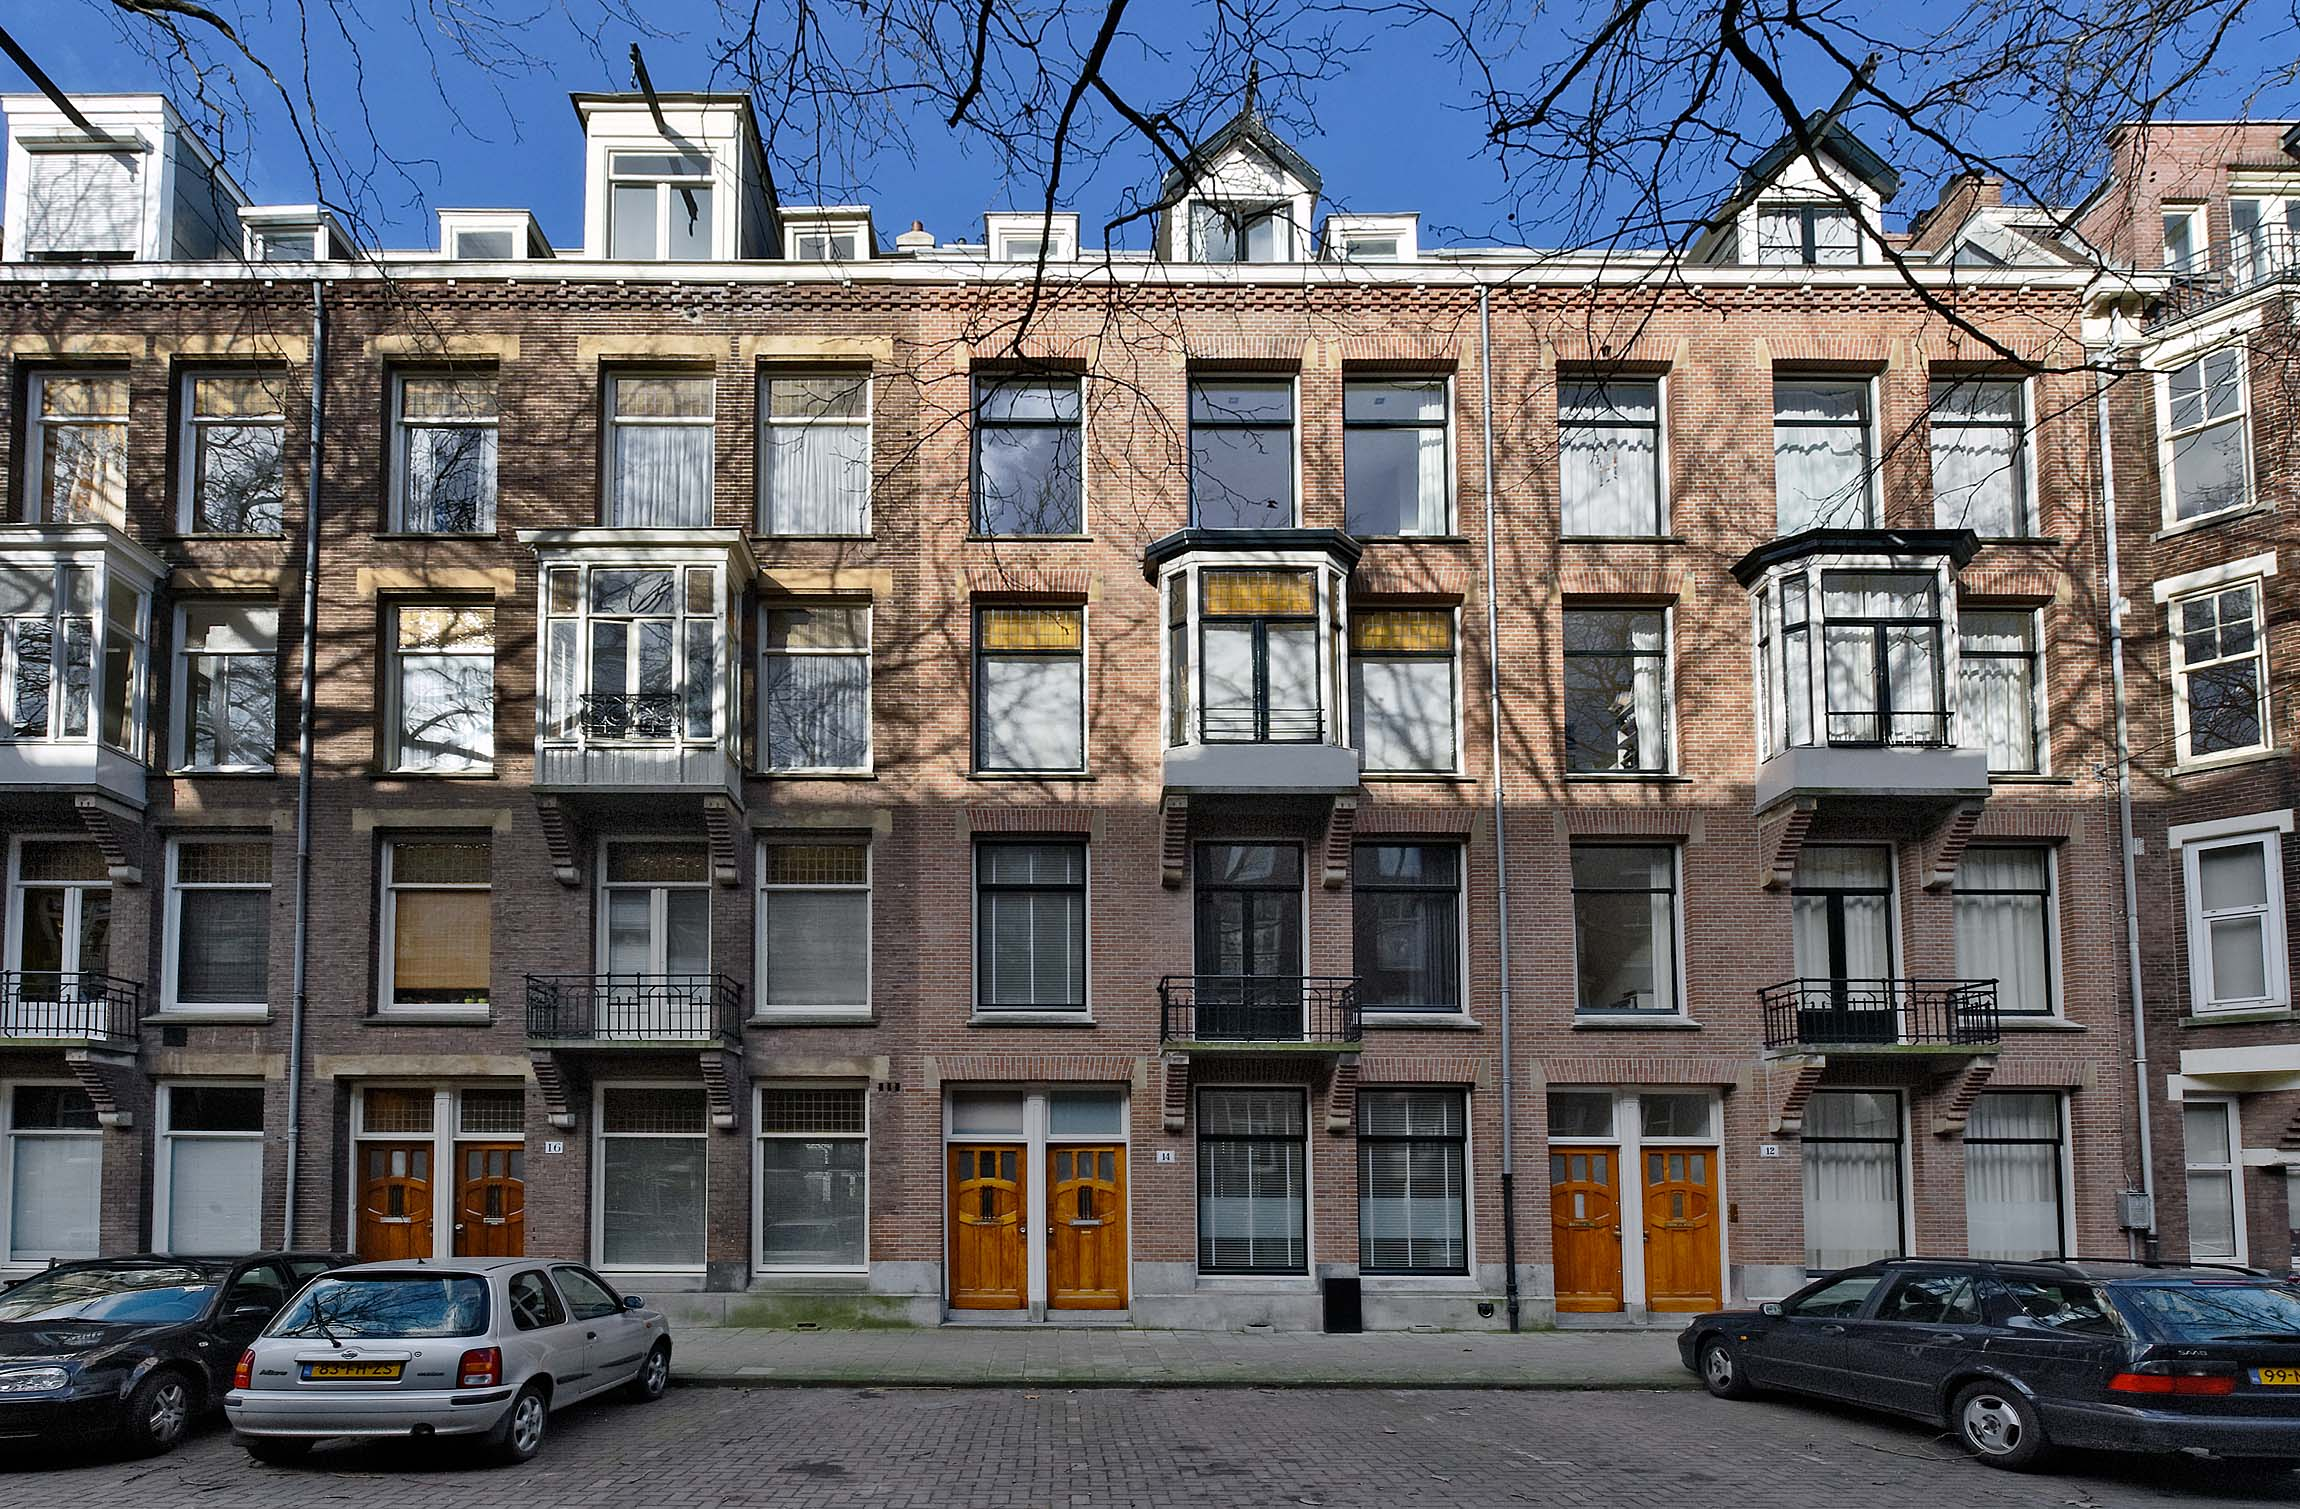 Lomanstraat 14 huis,Amsterdam,Noord-Holland Nederland,4 Bedrooms Bedrooms,1 BathroomBathrooms,Apartment,Lomanstraat,1162